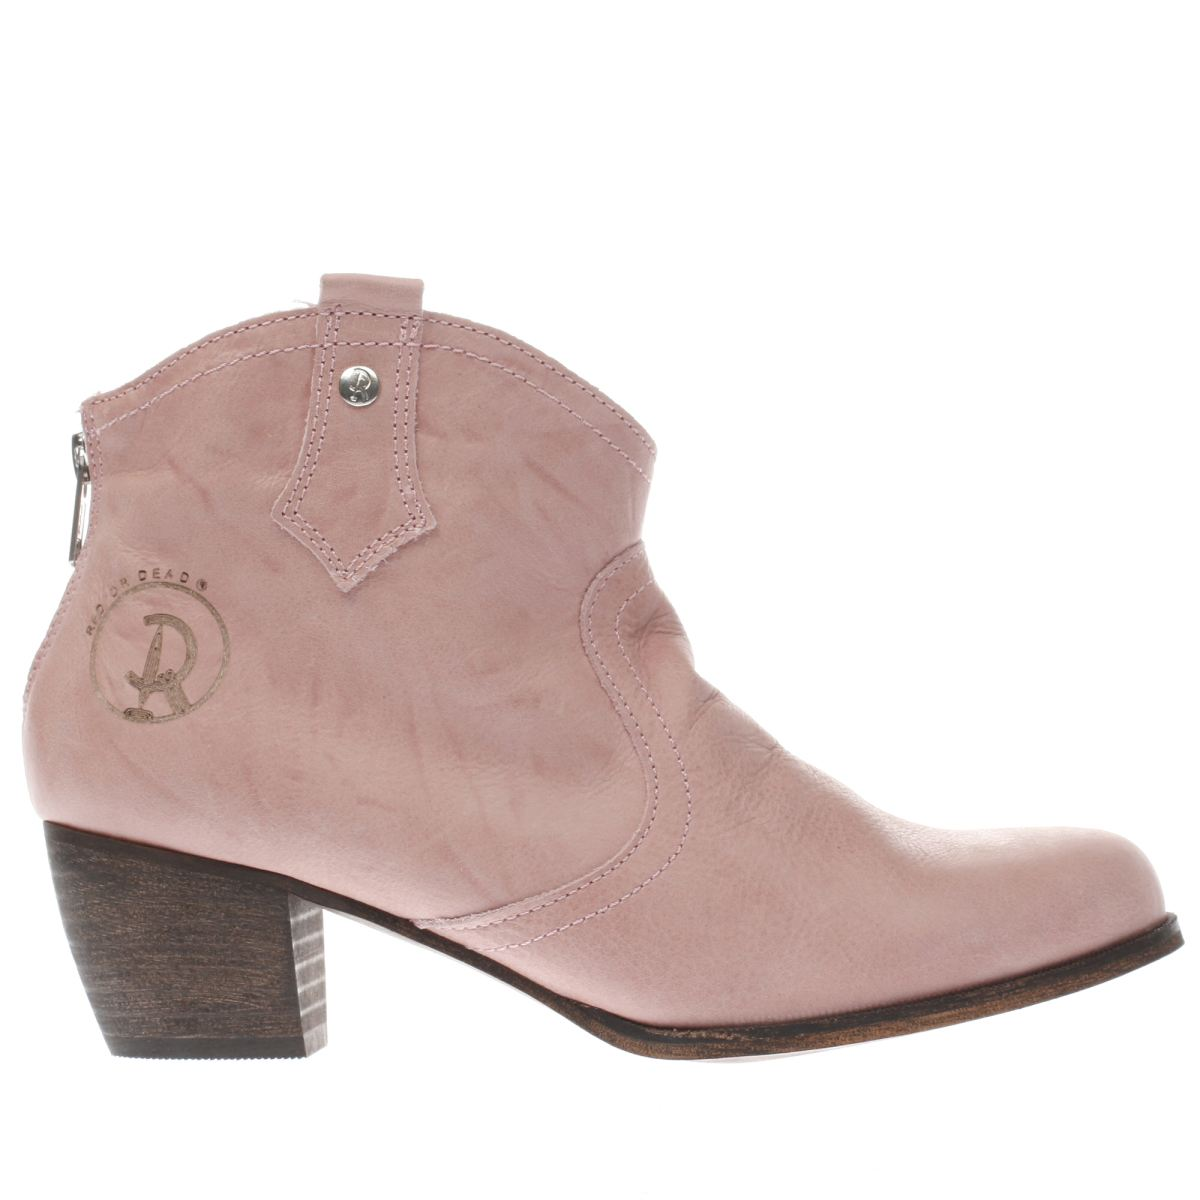 red or dead pale pink mountain boots